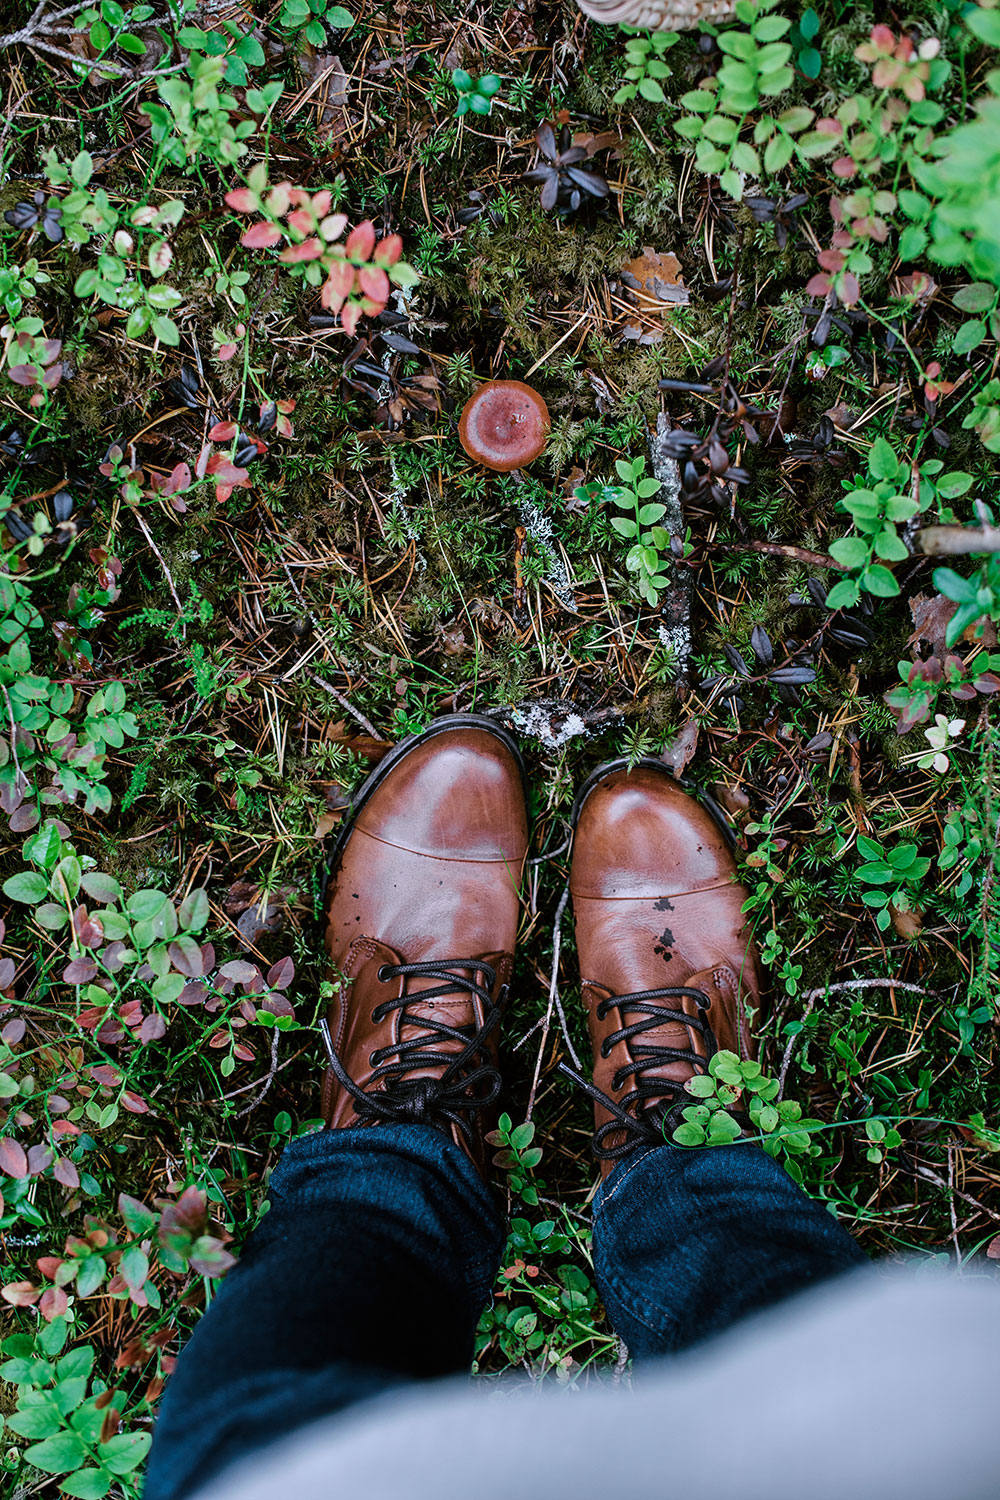 Brown boot and a brown little mushroom